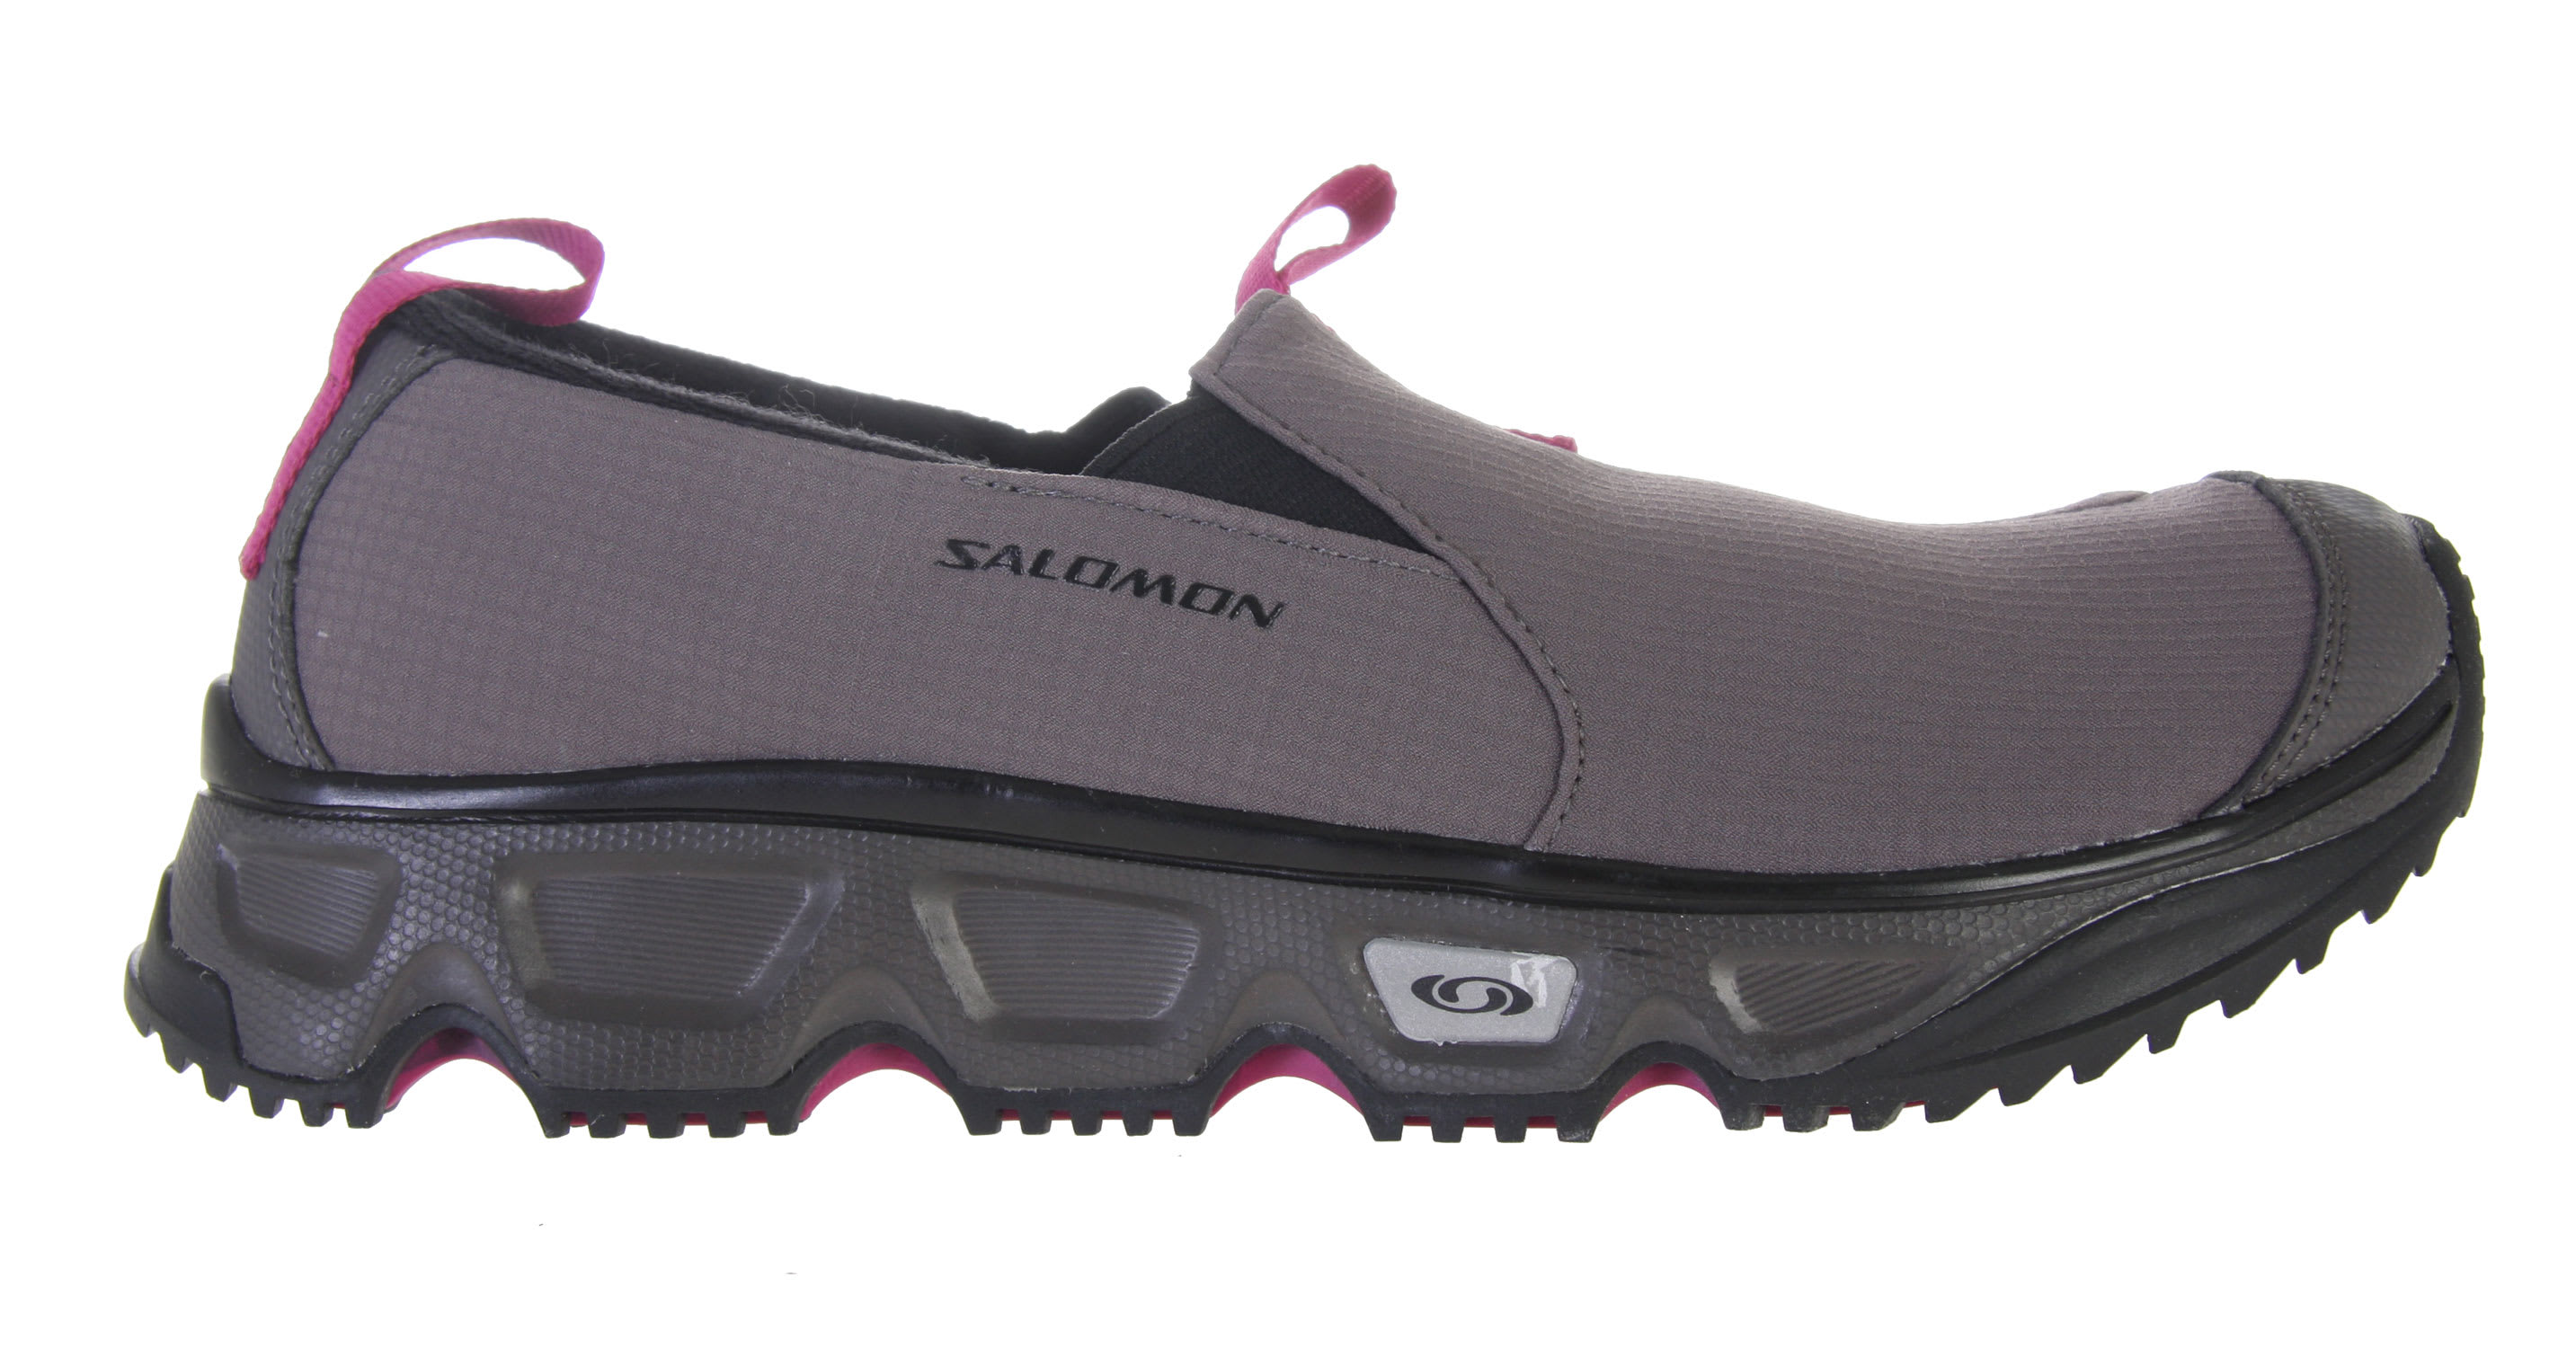 Shop for Salomon RX Snow Moc Shoes Autobahn/Black - Women's